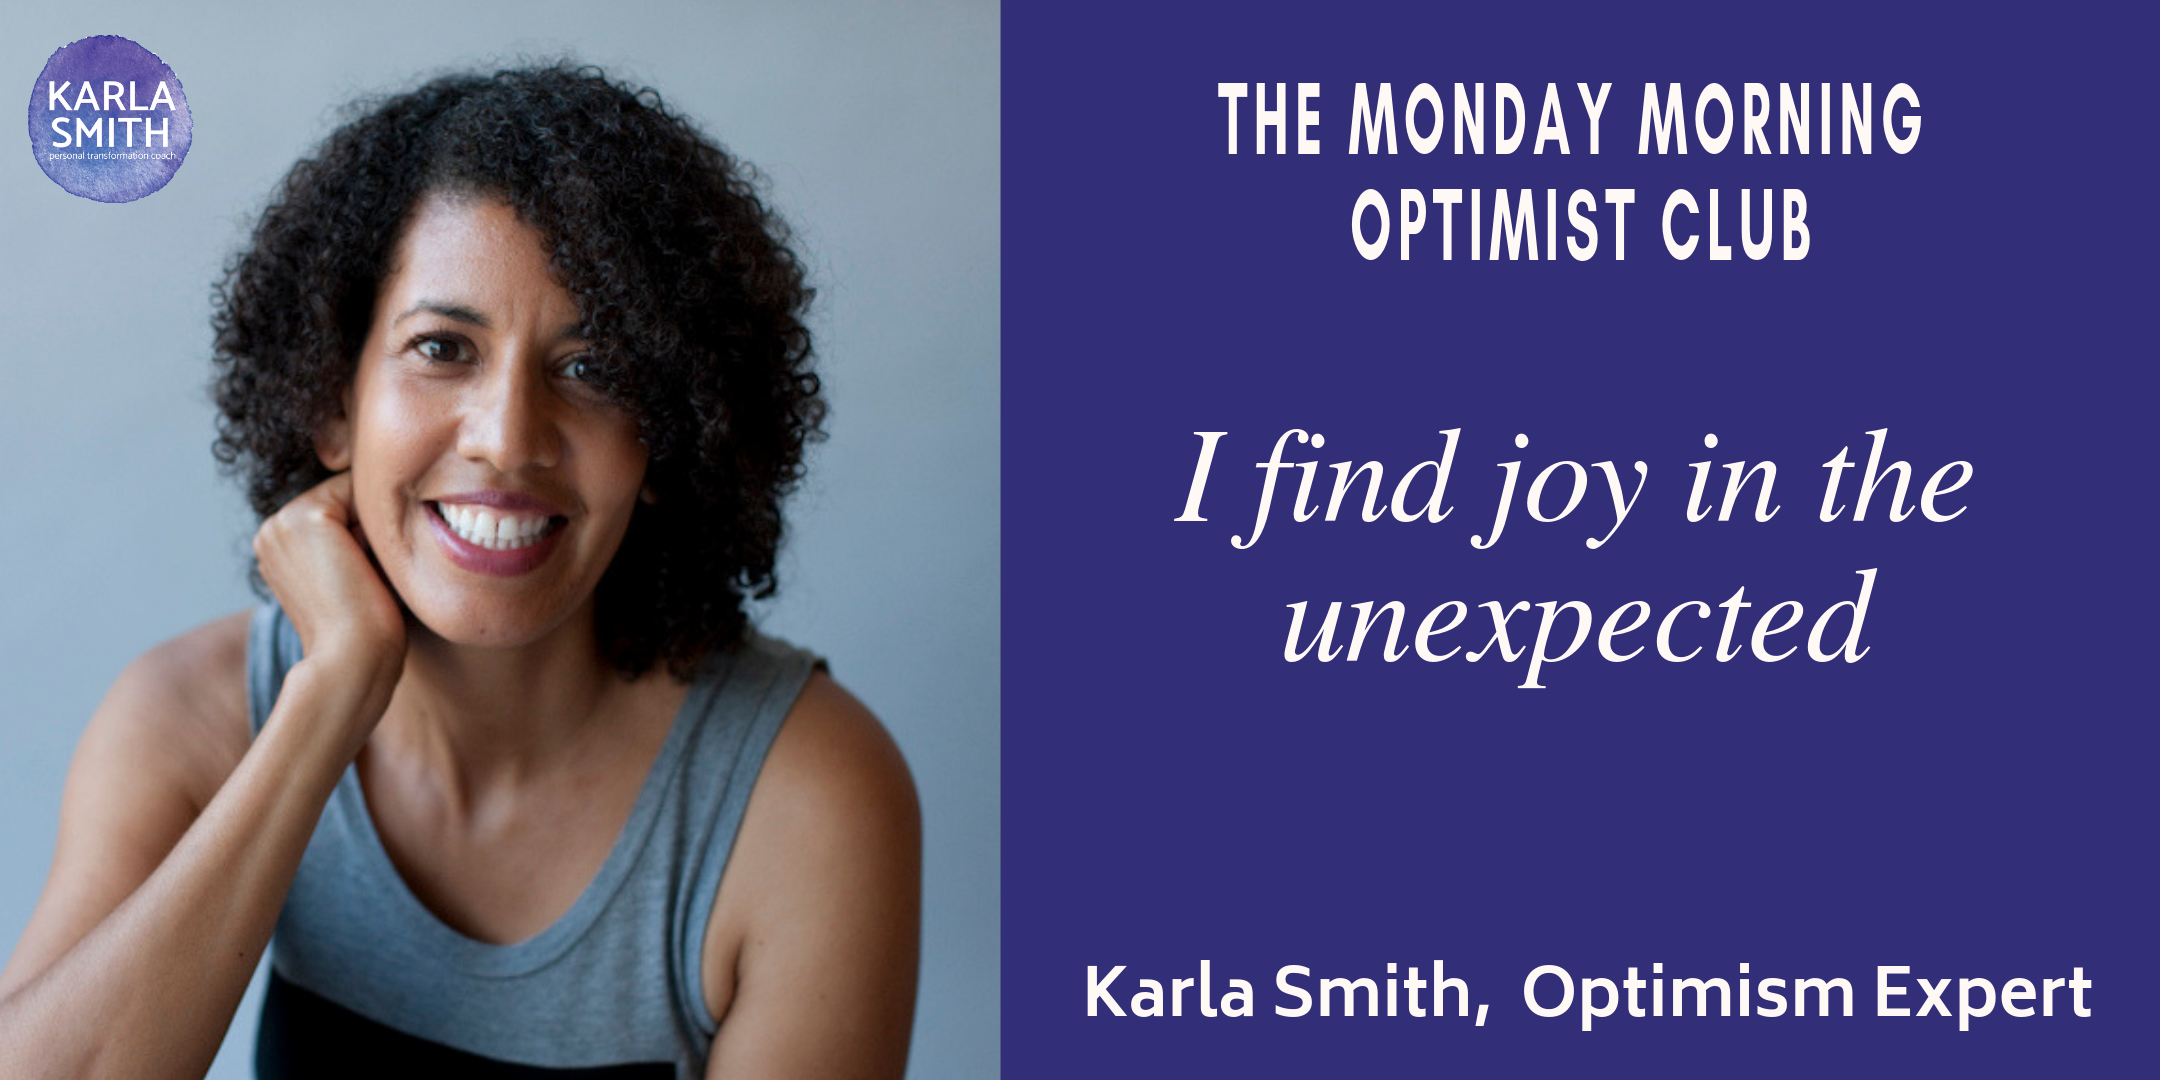 The Monday Morning Optimist Club